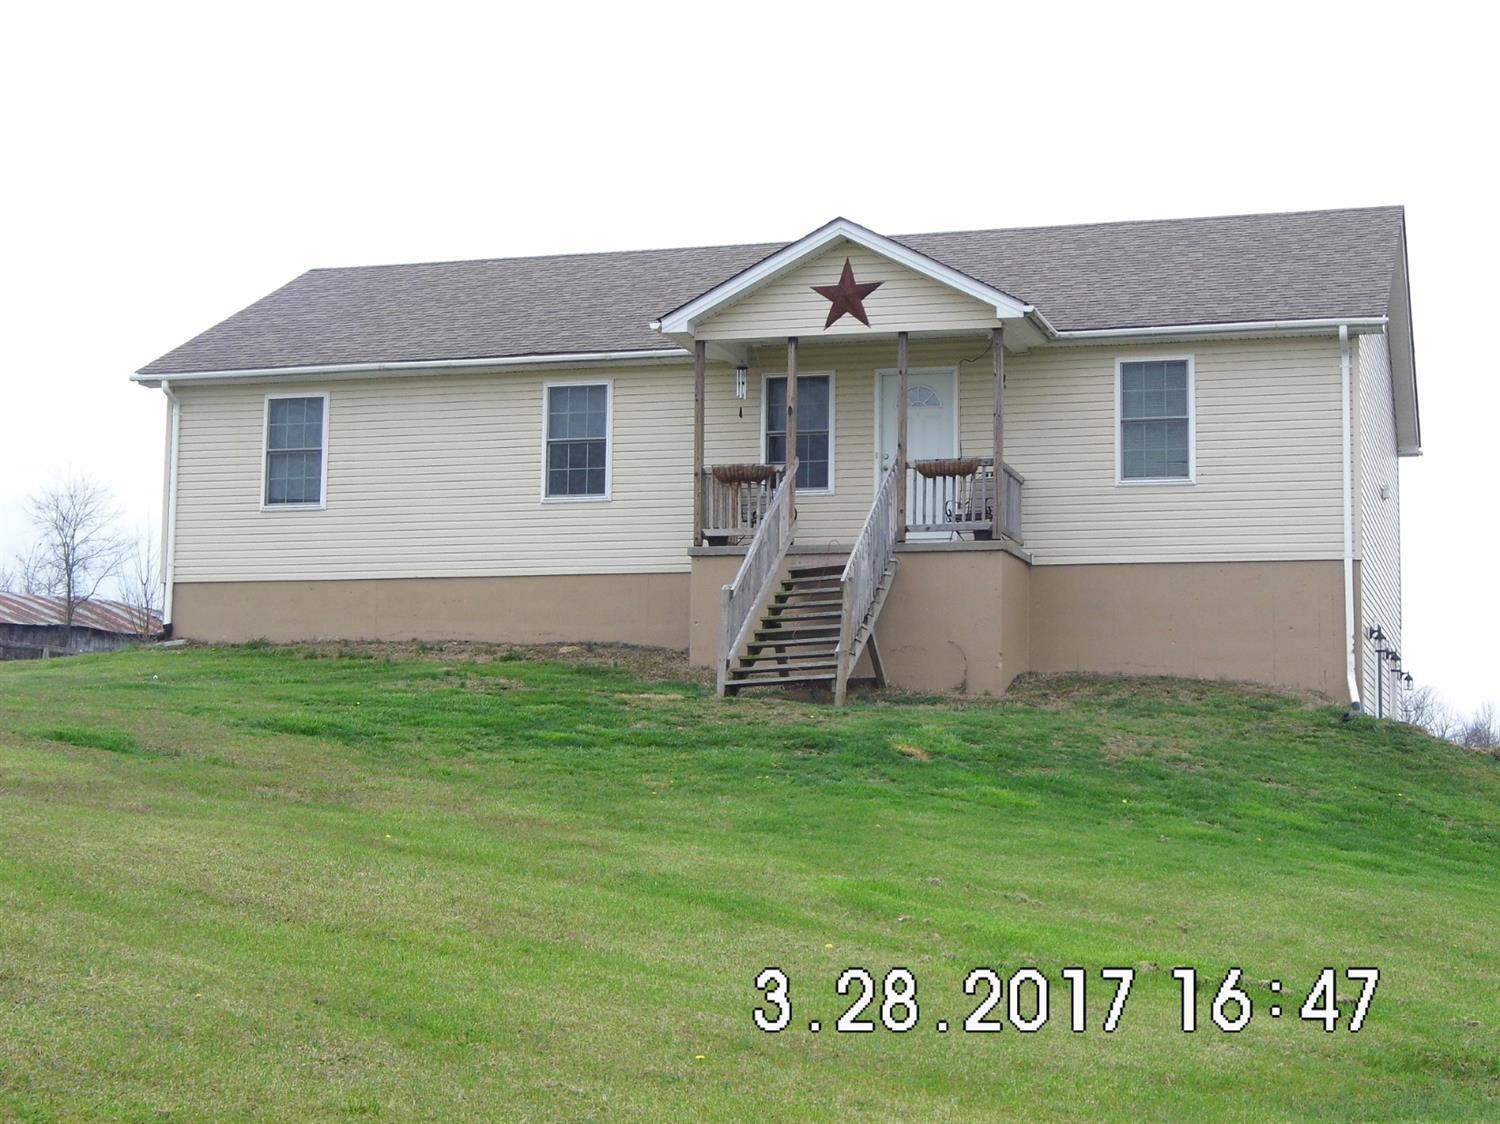 1977%20Quirks%20Run%20Rd.%20Danville%20KY.%20%20LOCATION,%20LOCATION,%20LOCATION!%20%20Nice%203%20bed%202%20bath%20home%20over%20a%20full%20unfinished%20basement%20situated%20on%20almost%204%20acres.%20Boyle%20County%20schools.%20%20Built%20in%202007.%20%20Home%20is%20being%20sold%20AS-IS.%20%2024%20hour%20notice%20required%20for%20showing%20appointment.